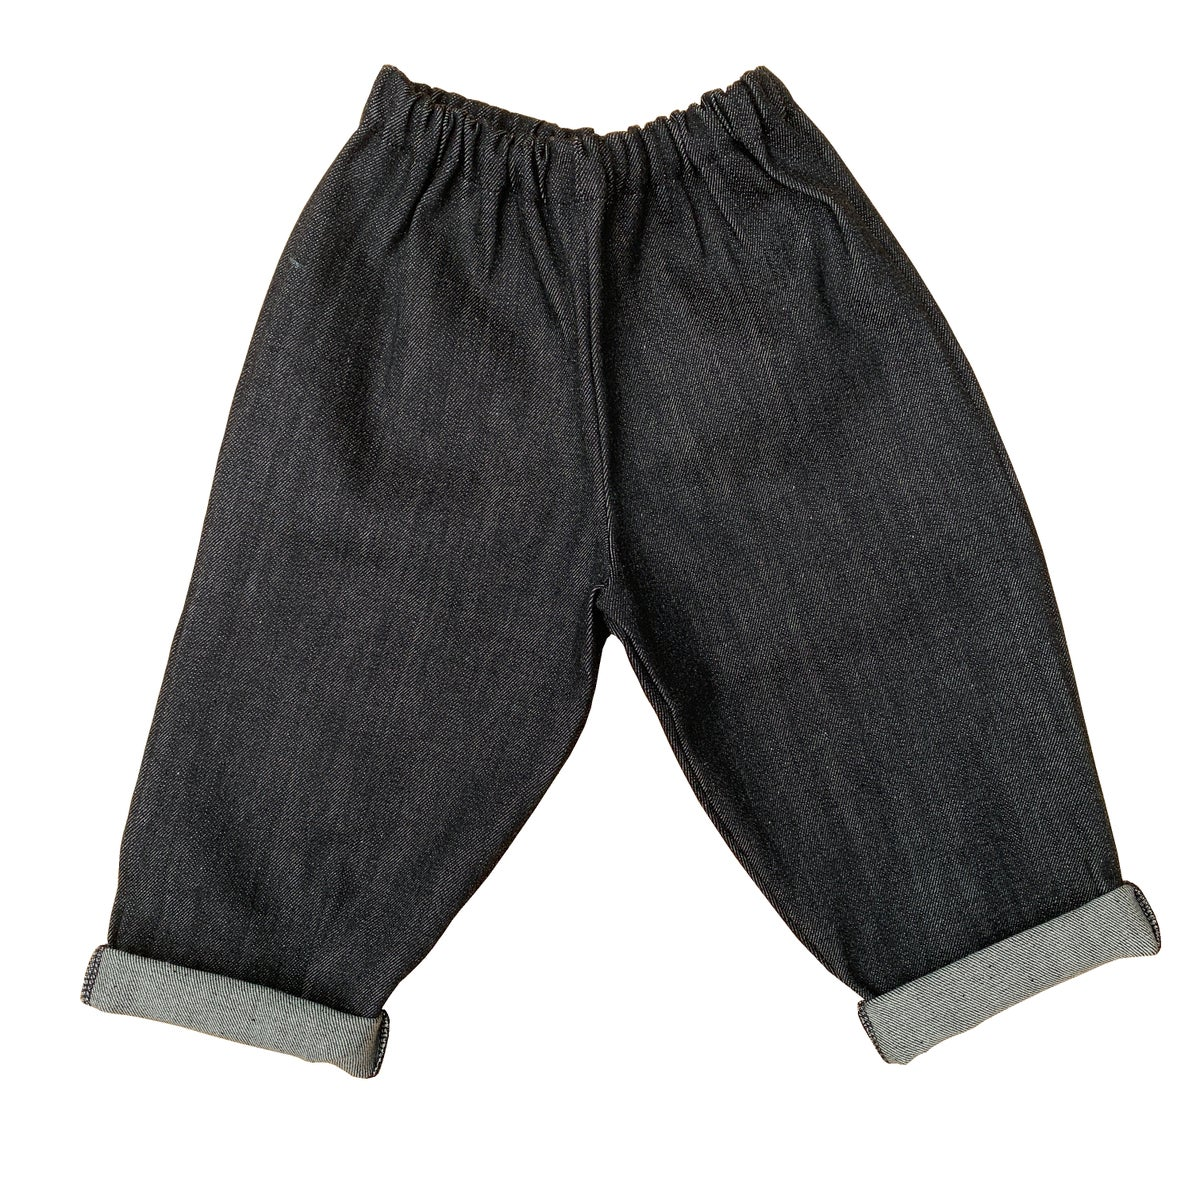 Image of Pippins - Toddler Jeans In Raw Balck